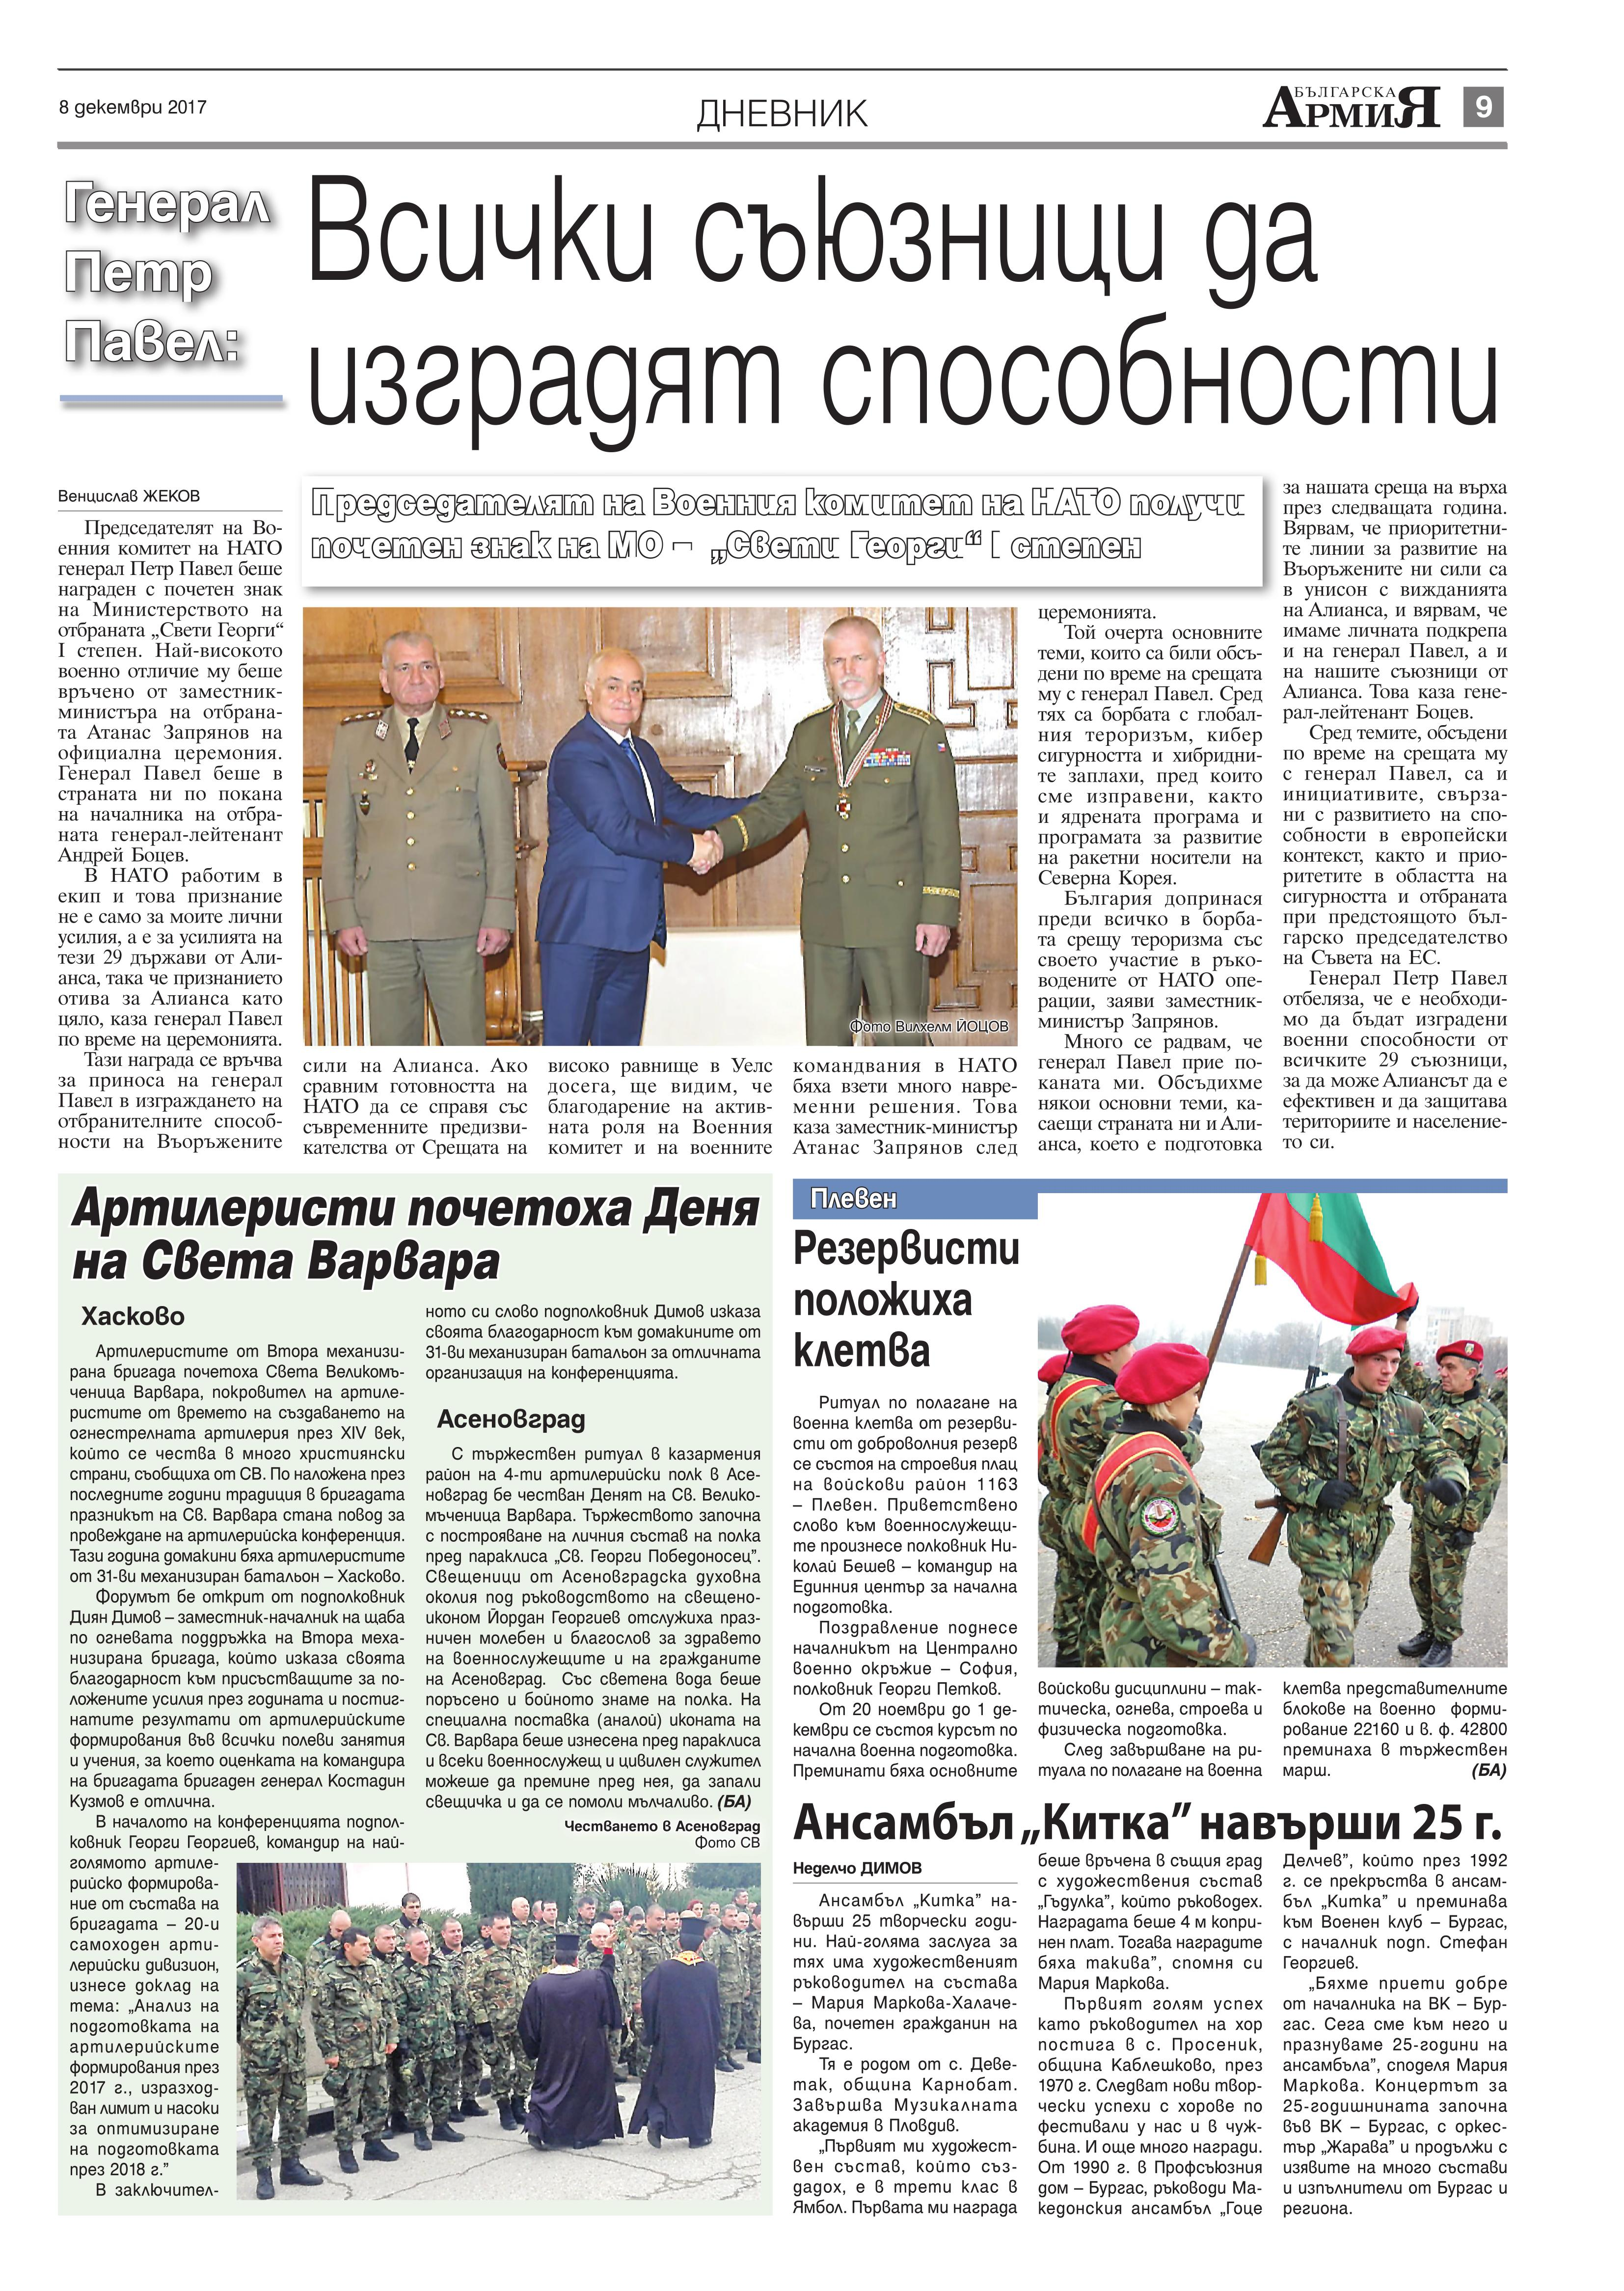 https://armymedia.bg/wp-content/uploads/2015/06/09.page1_-33.jpg